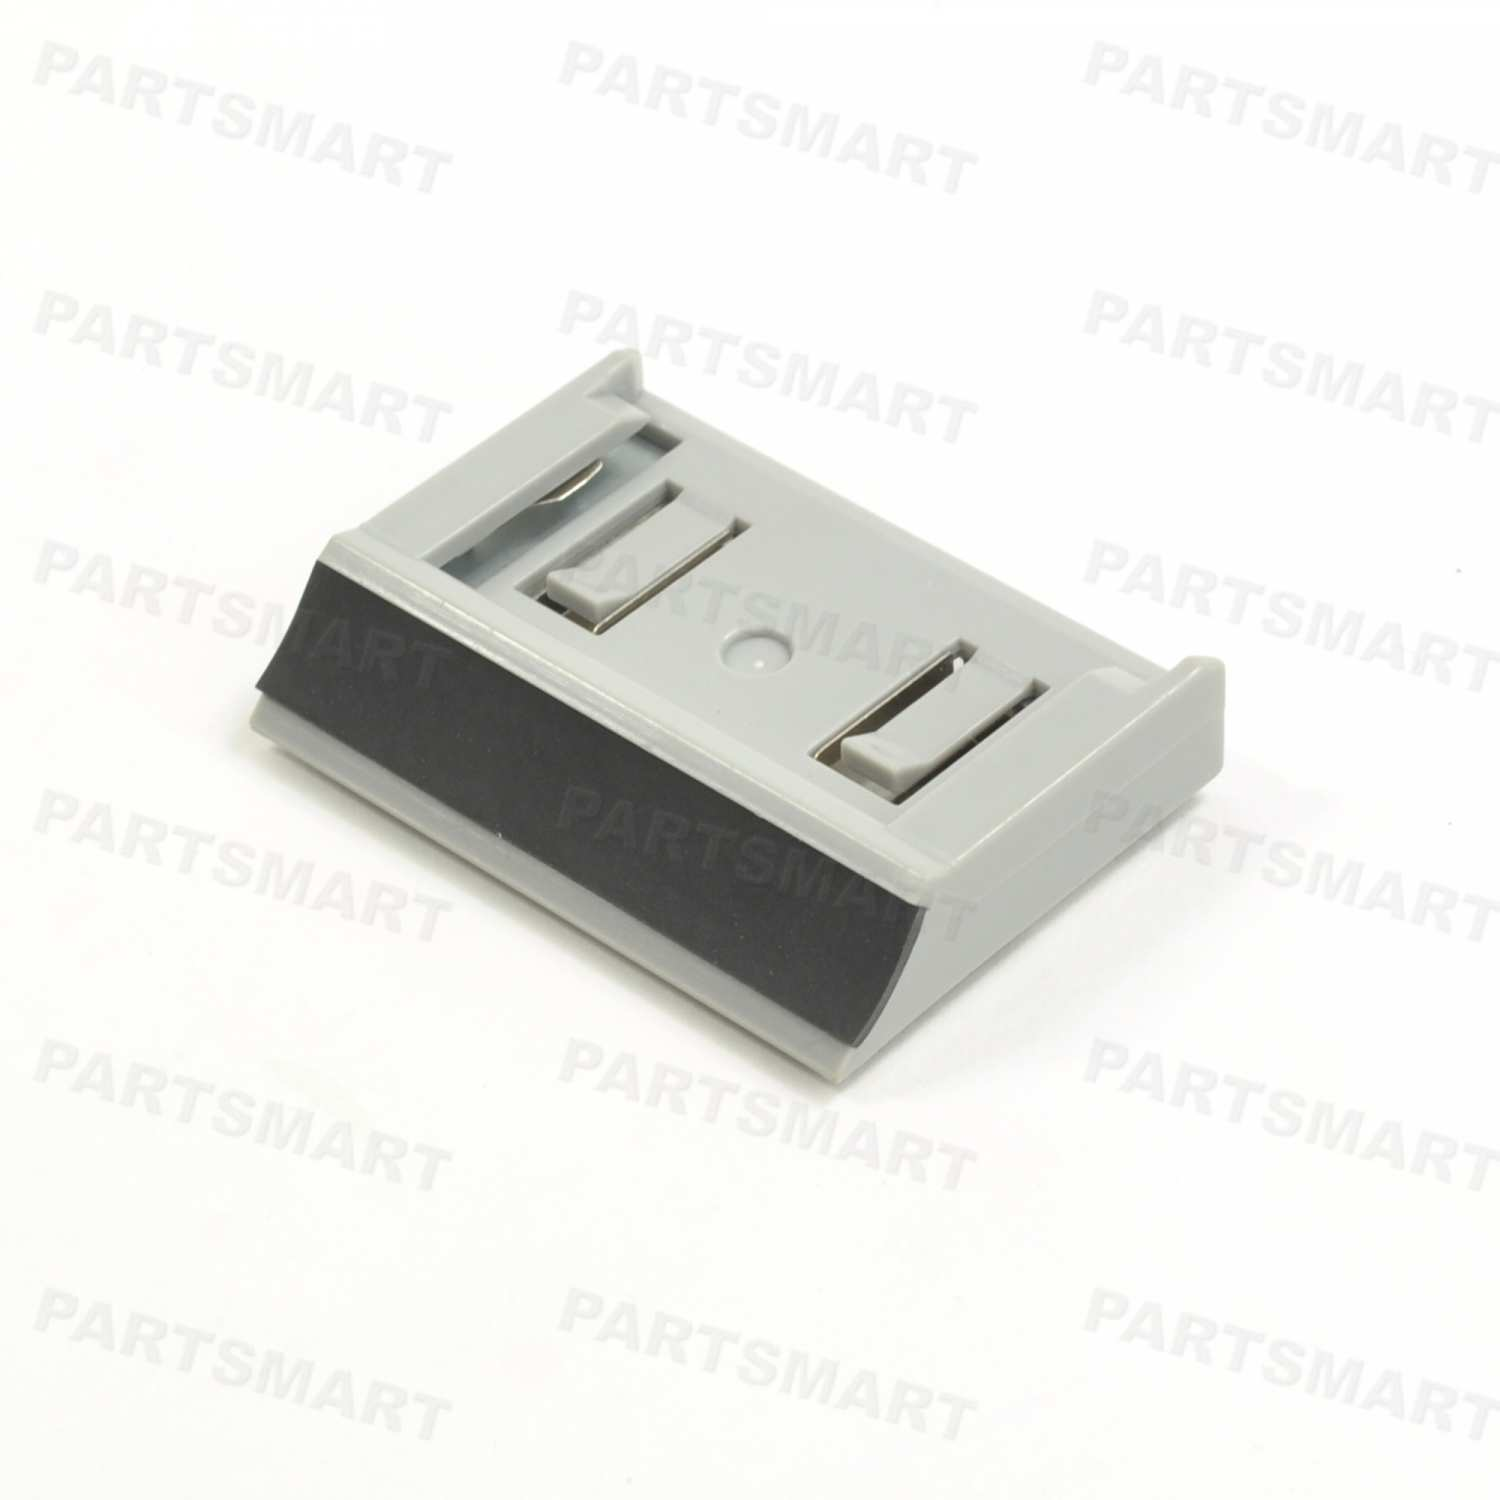 RF5-4258-000 Separation Pad, Tray 2 for HP LaserJet 2300, Color LaserJet 2500